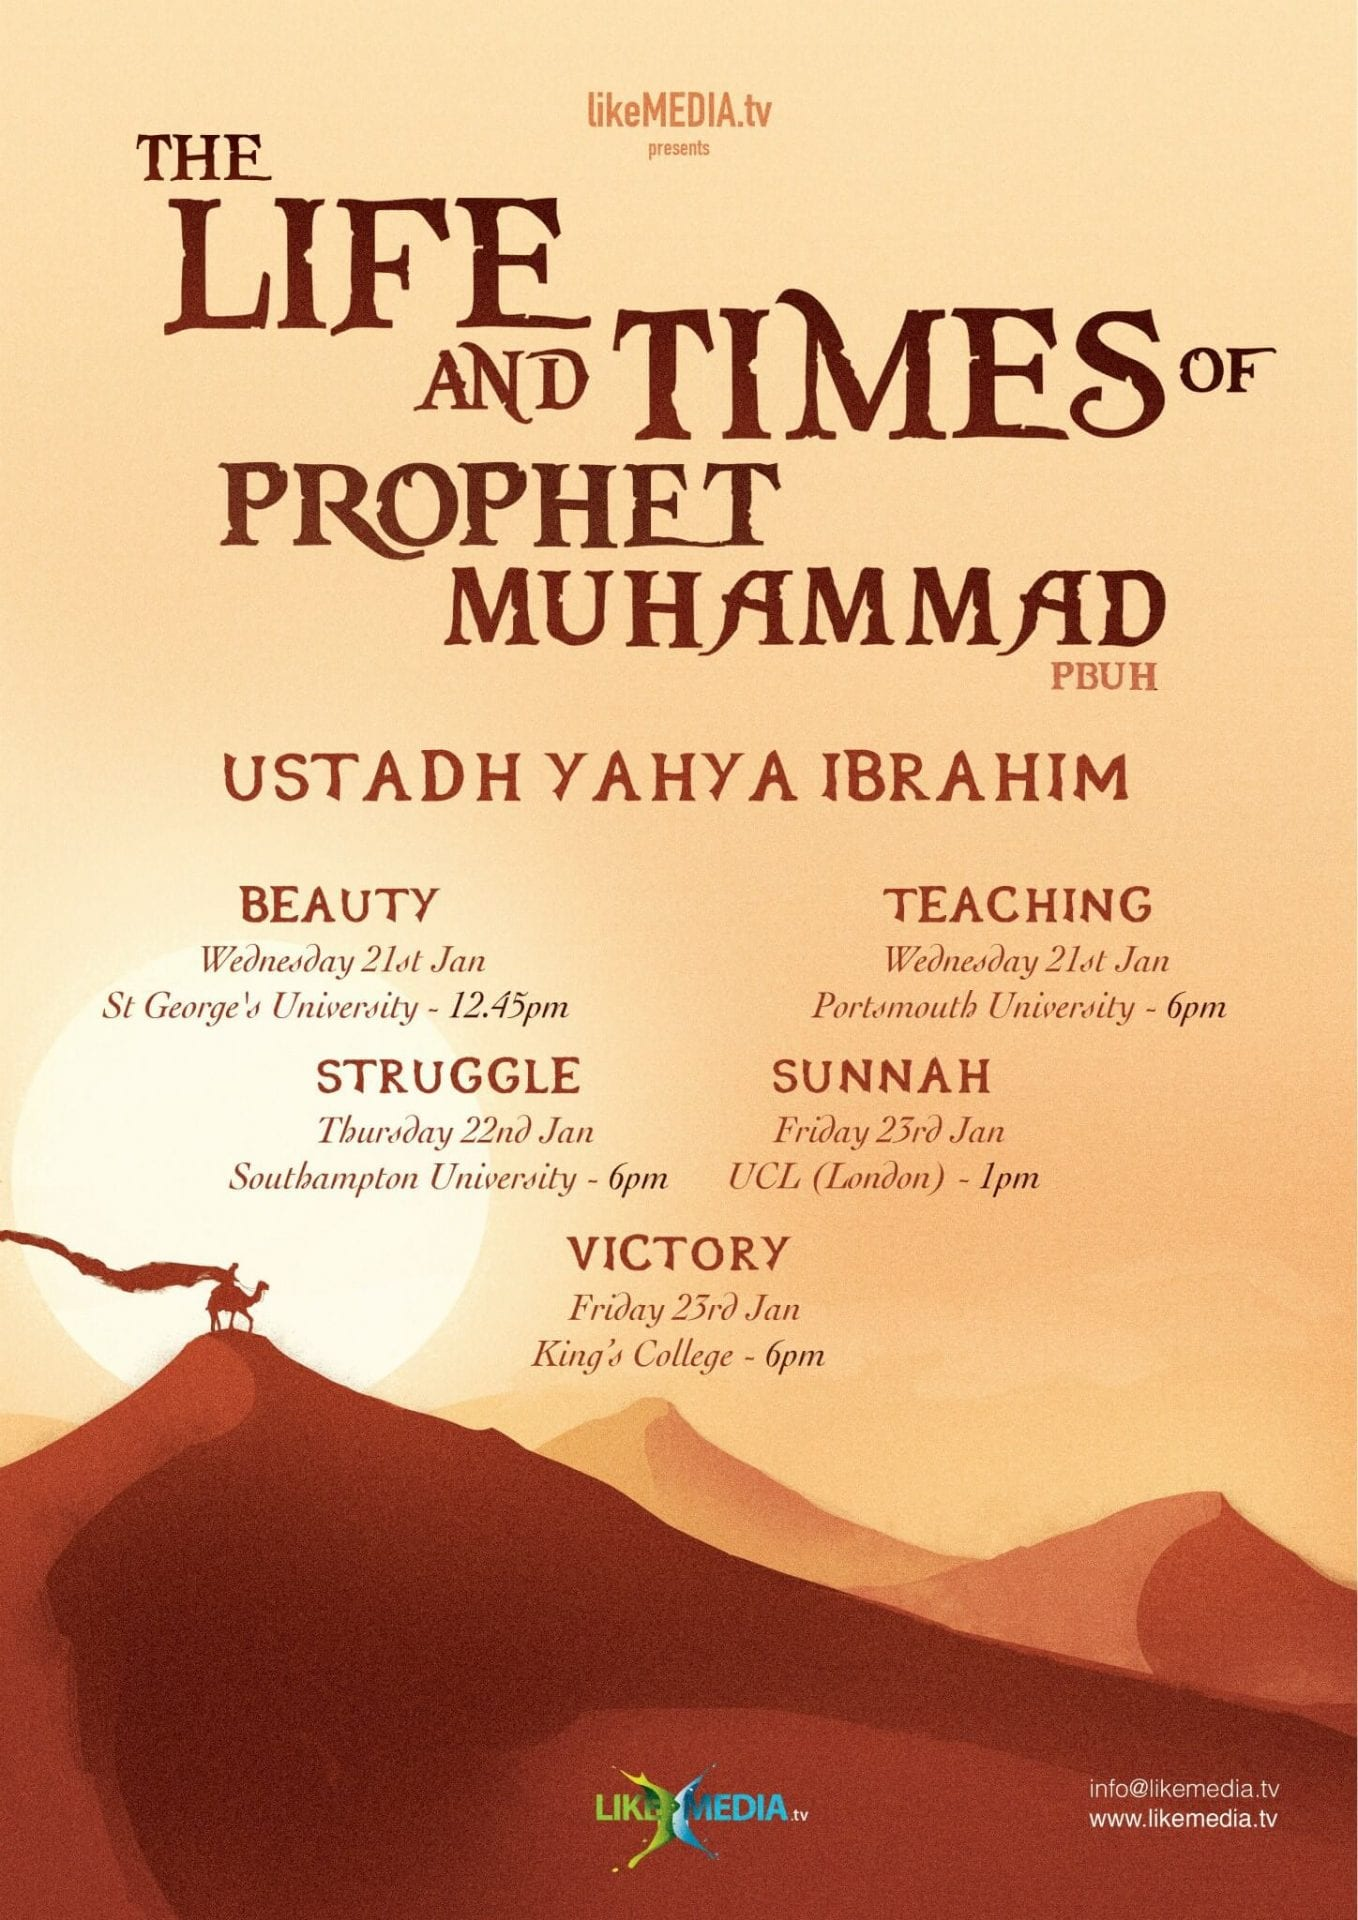 LikeMedia - THE LIFE AND TIMES OF PROPHET MUHAMMAD (PBUH)